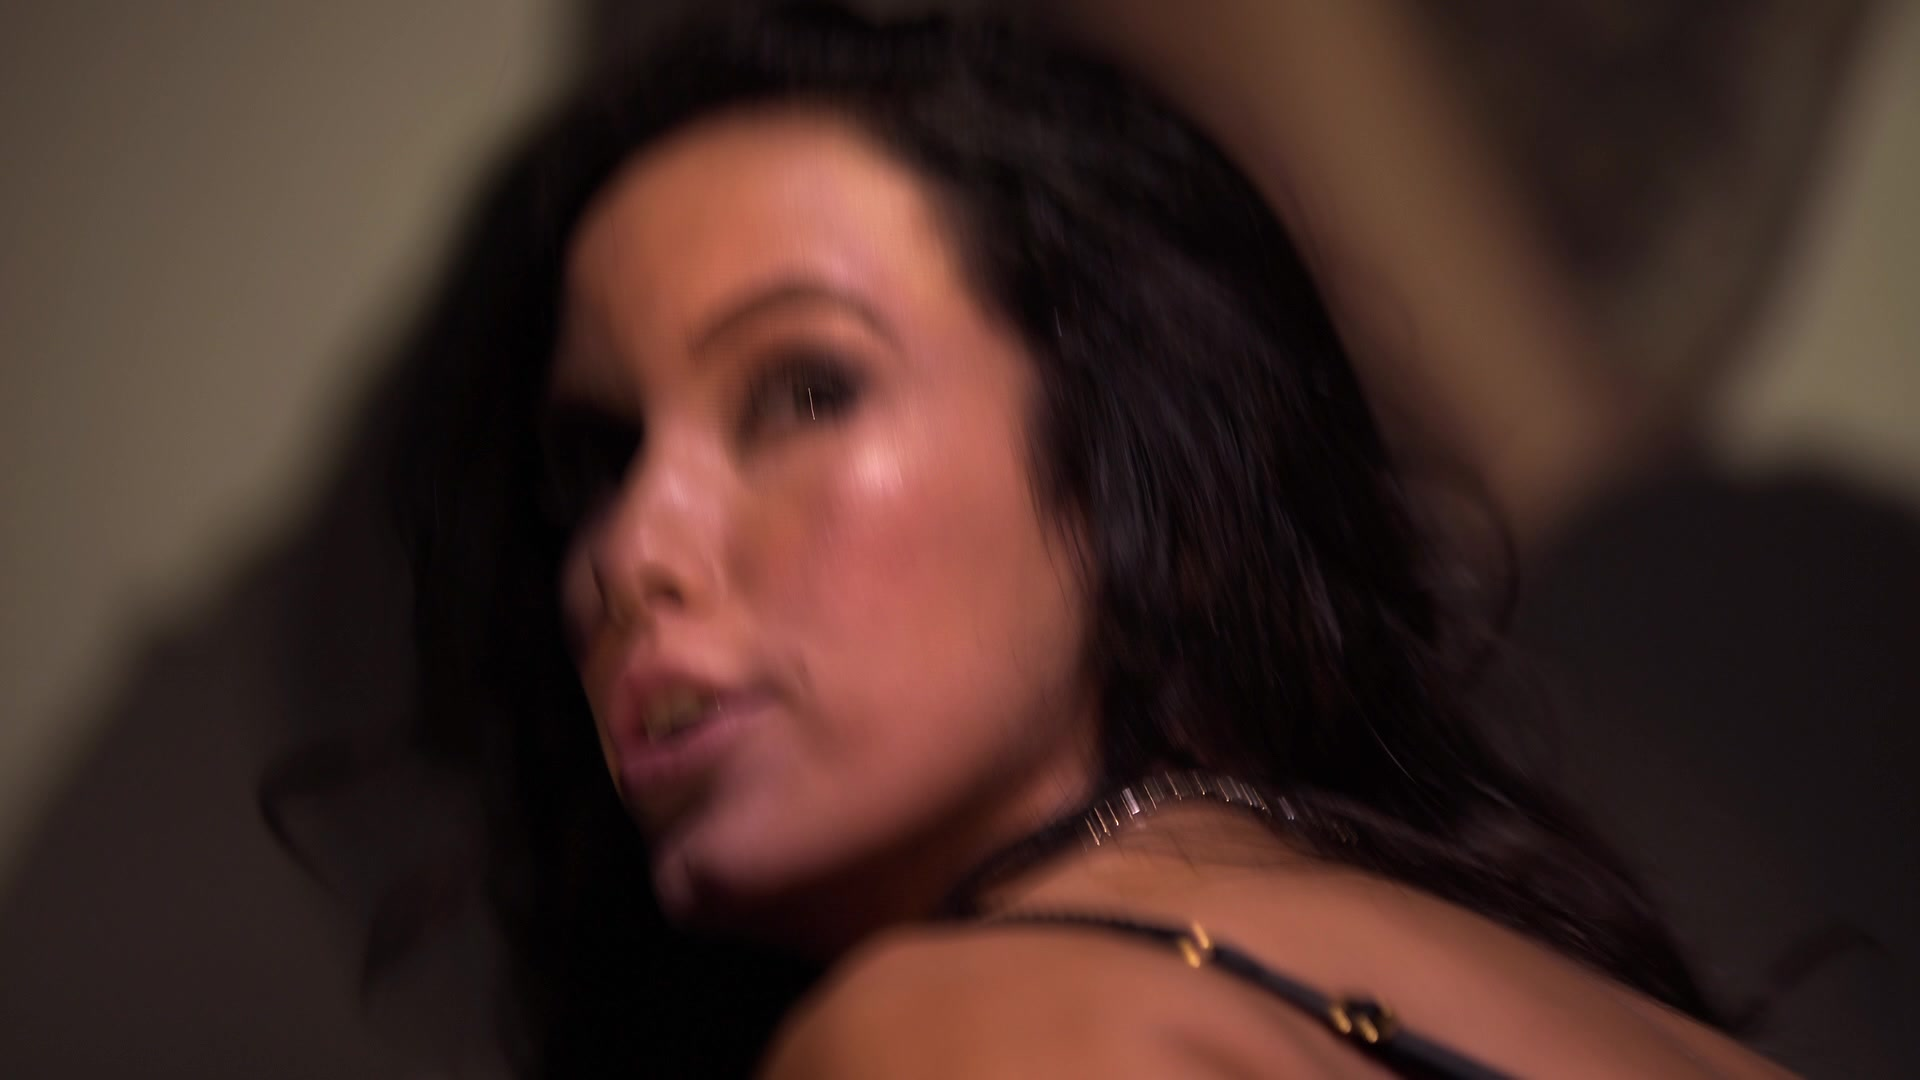 Scene with Megan Rain - image 15 out of 20